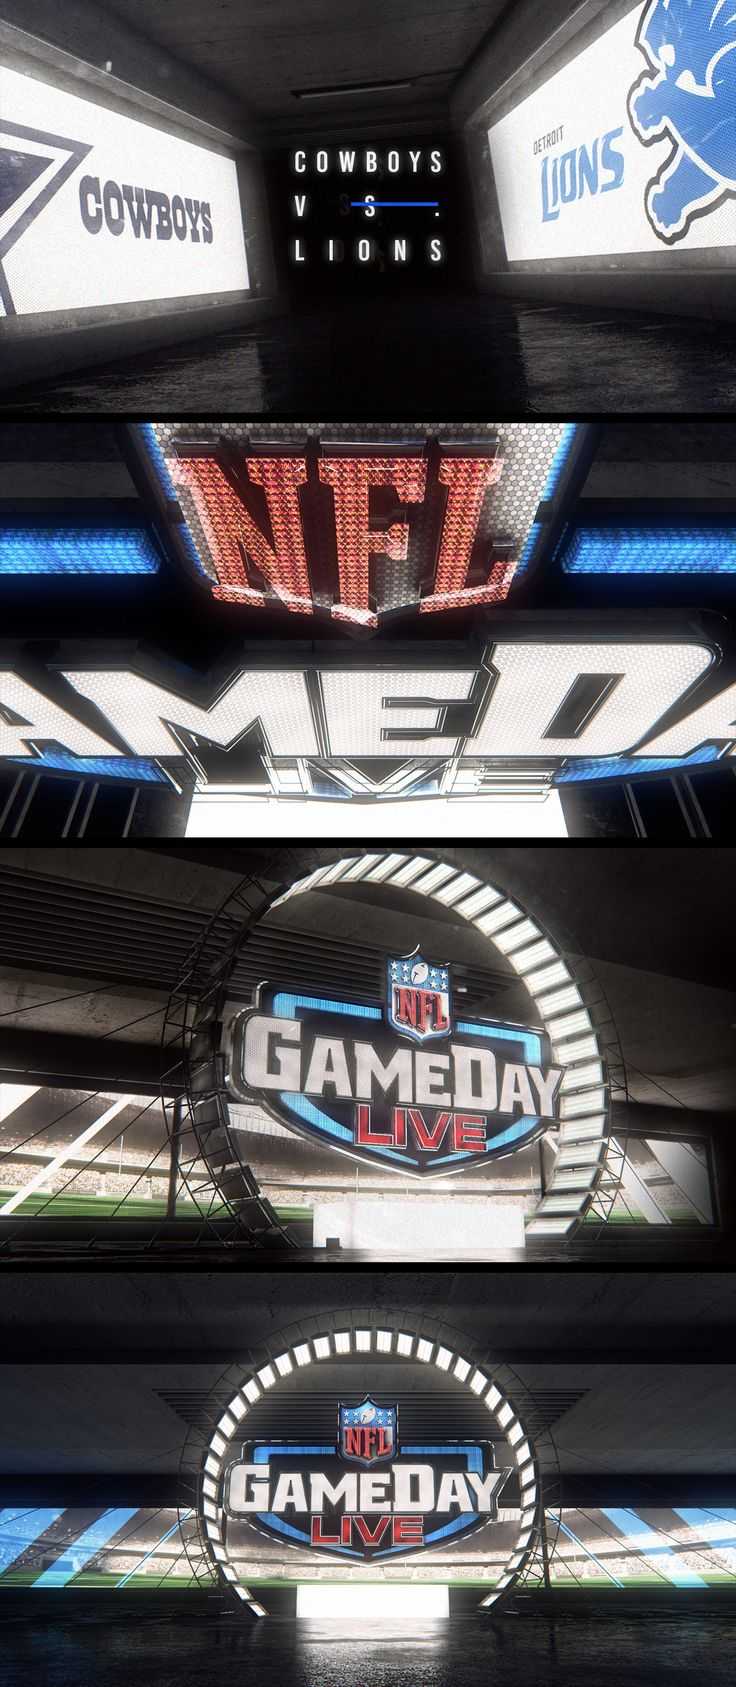 Design and Animation for Gameday rebrand pitch